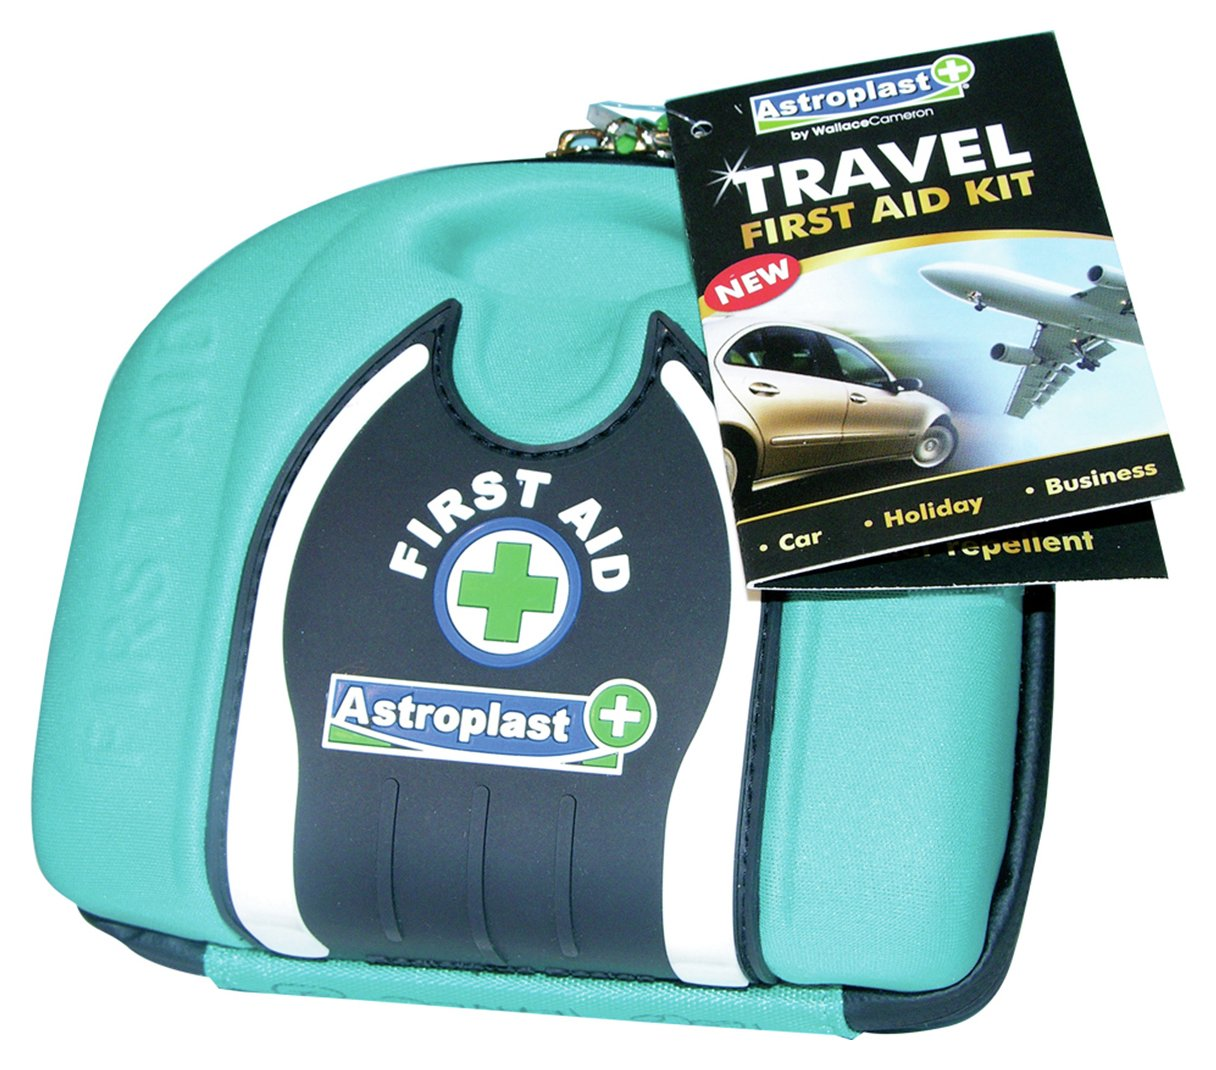 Image of Astroplast Small Travel Pouch First Aid Kit.